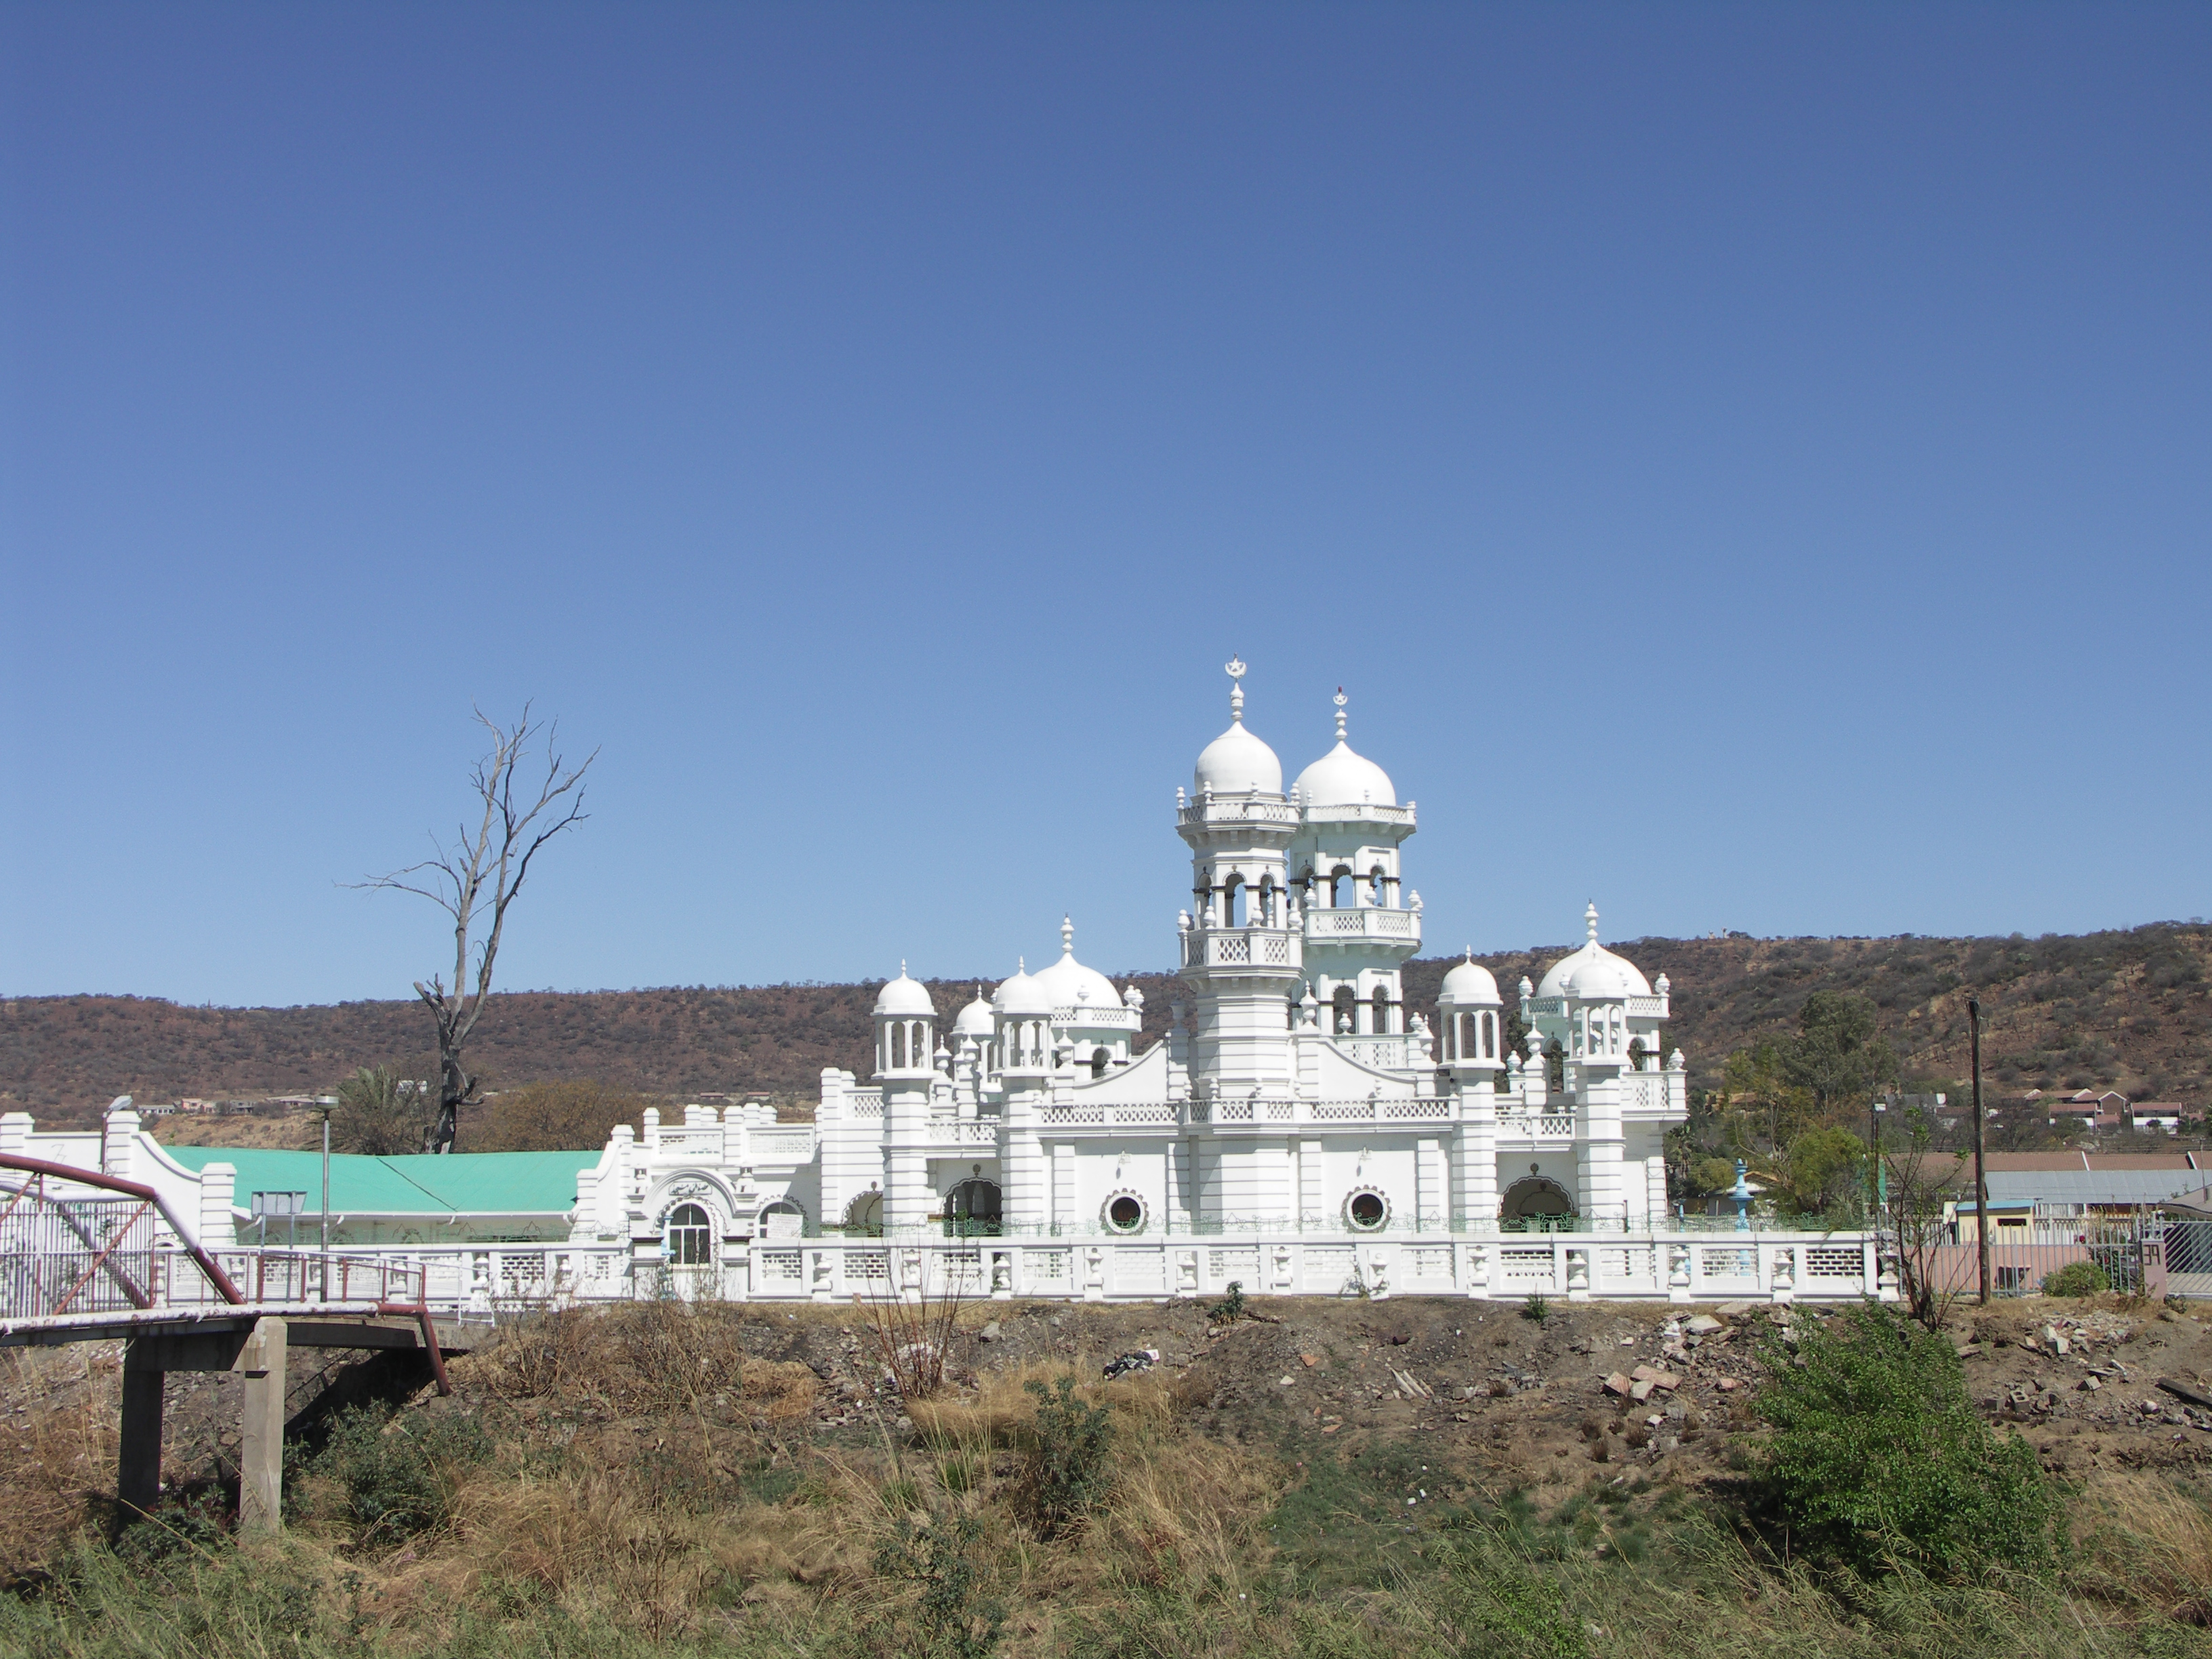 Ladysmith South Africa  City pictures : South Africa Ladysmith Sufi Mosque 01 Wikipedia, the free ...